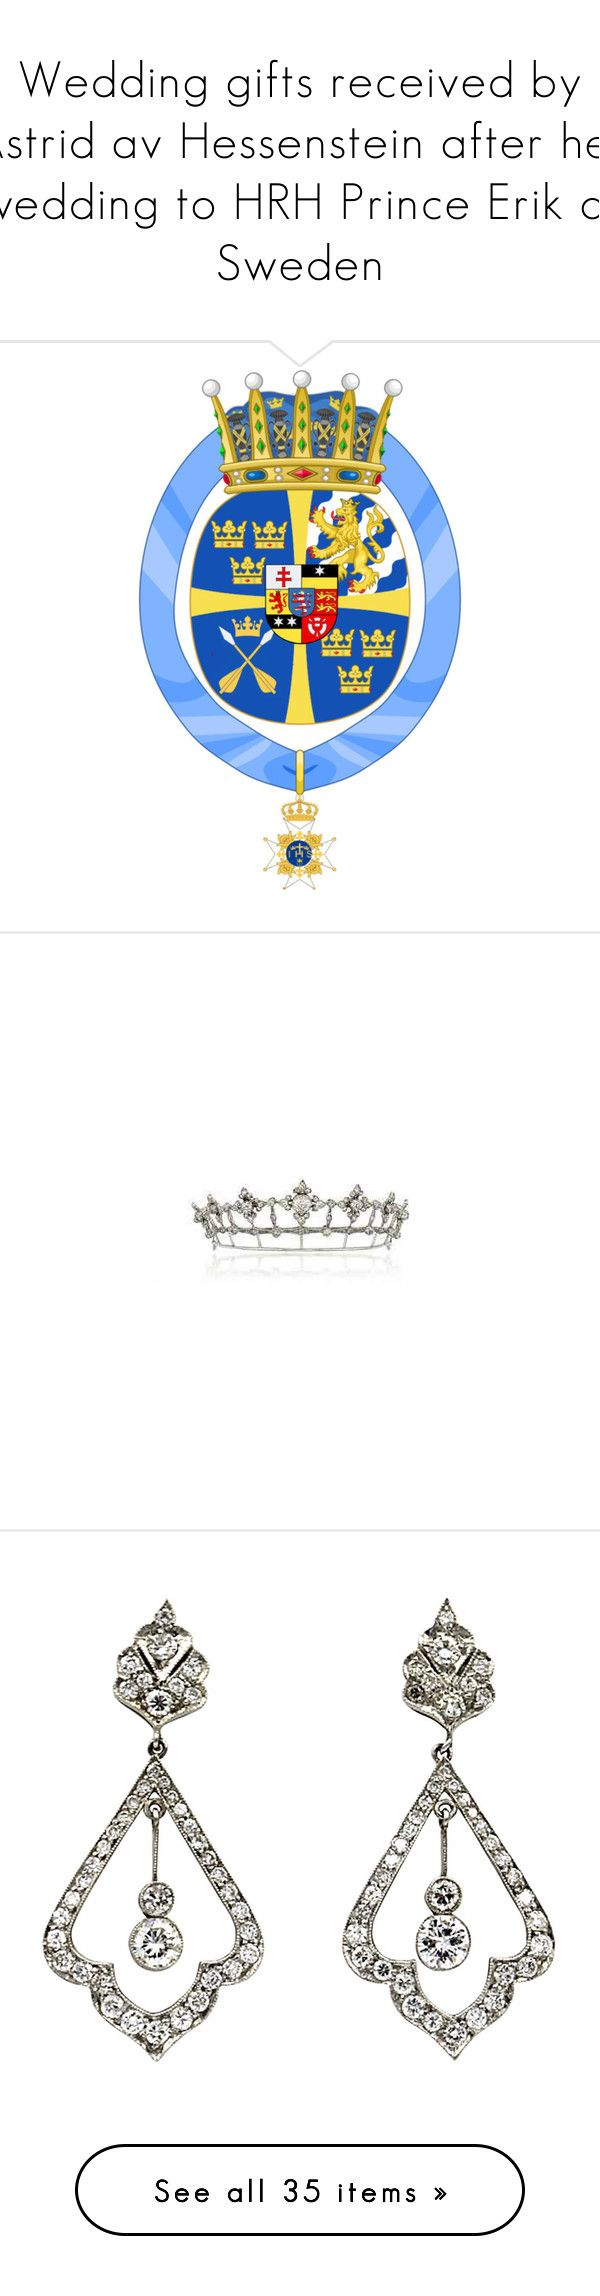 """""""Wedding gifts received by Astrid av Hessenstein after her wedding to HRH Prince Erik of Sweden"""" by astridavhessenstein ❤ liked on Polyvore featuring jewelry, wine jewelry, diamond jewelry, diamond jewellery, earrings, multiple, earrings jewelry, platinum earrings, long diamond earrings and deco earrings"""